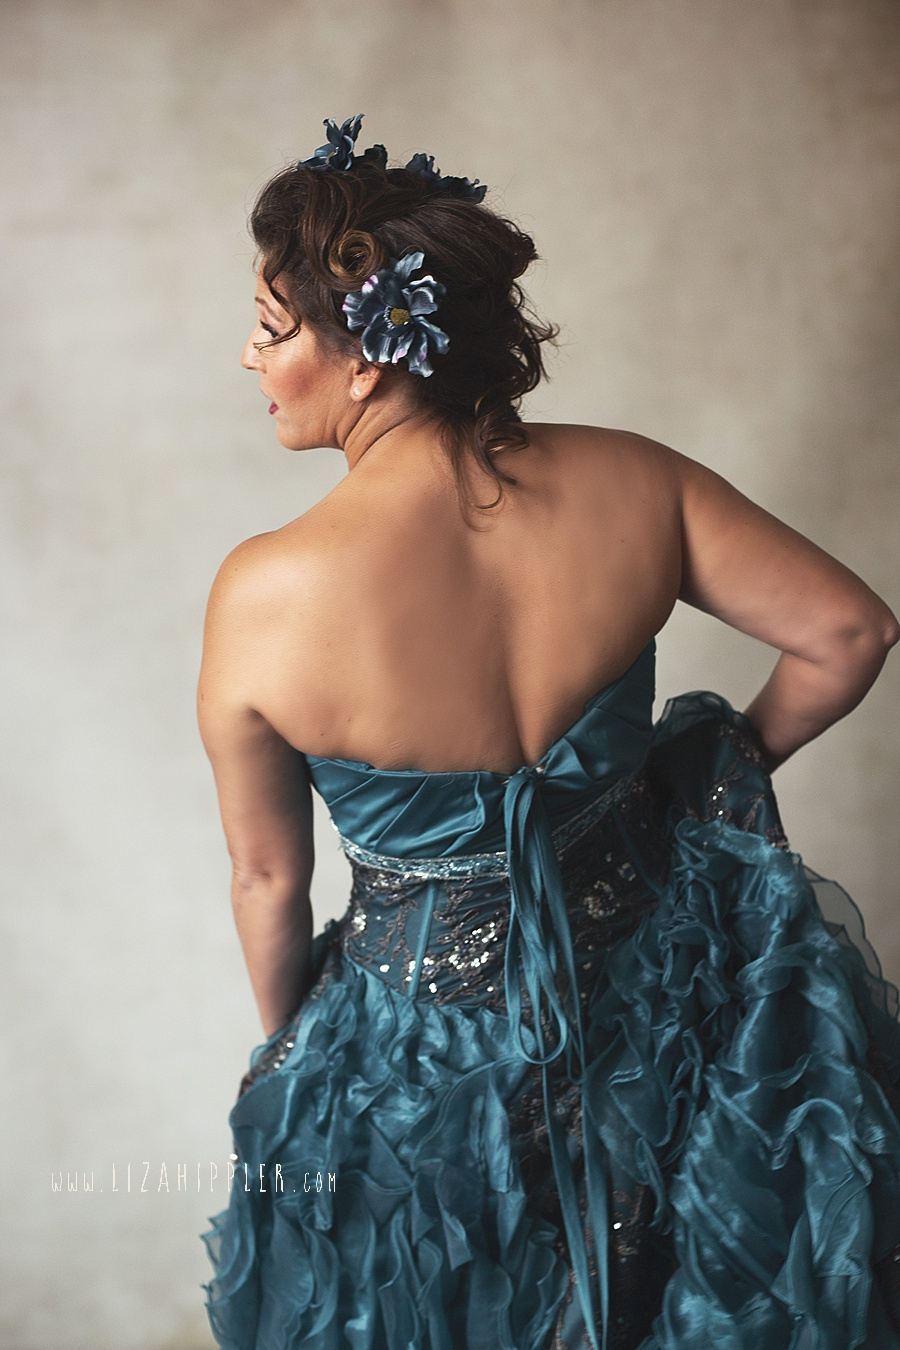 back of woman dancing in layered blue dress